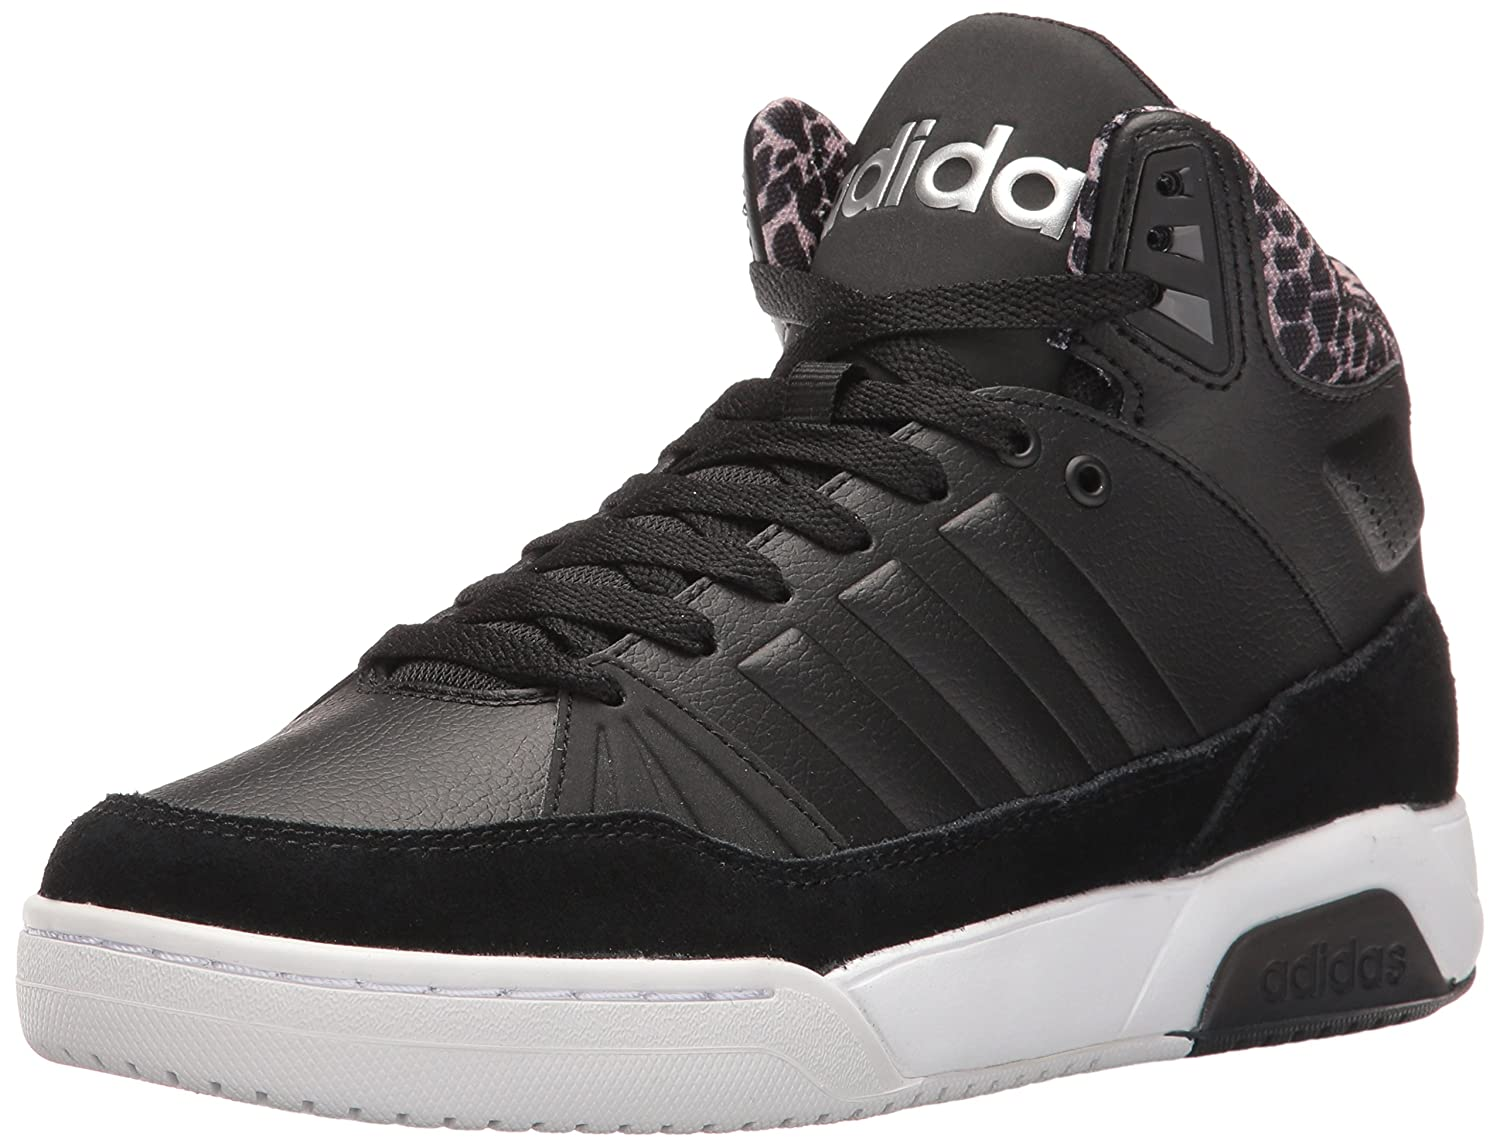 adidas Women's Play9tis Fashion Sneakers B01HSIQT9M 8 M US|Black/Black/Matte Silver